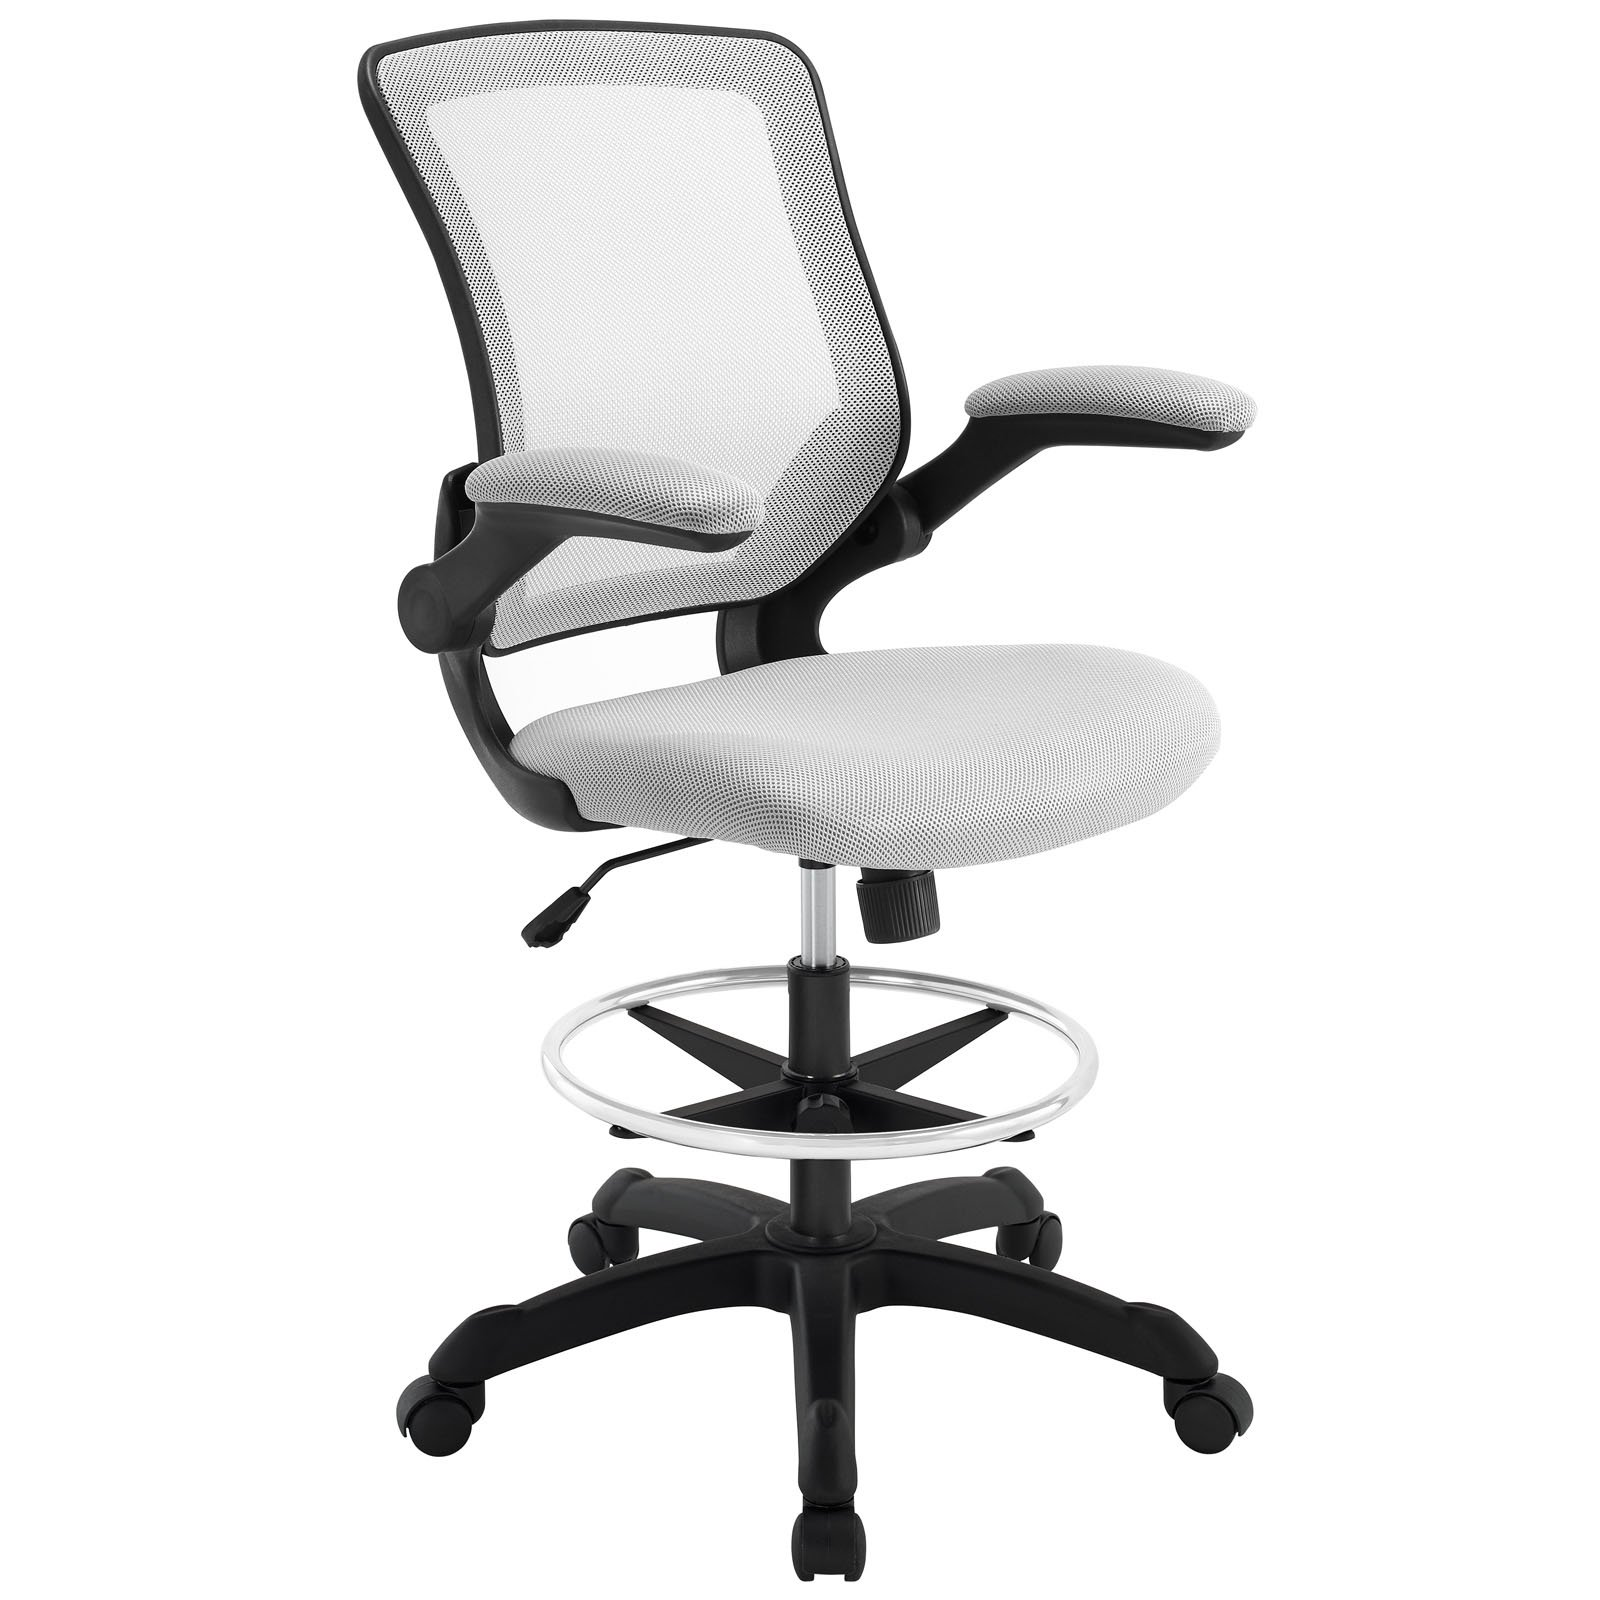 Get Quotations · Modway Veer Drafting Stool In Gray   Reception Desk Chair    Tall Office Chair For Adjustable